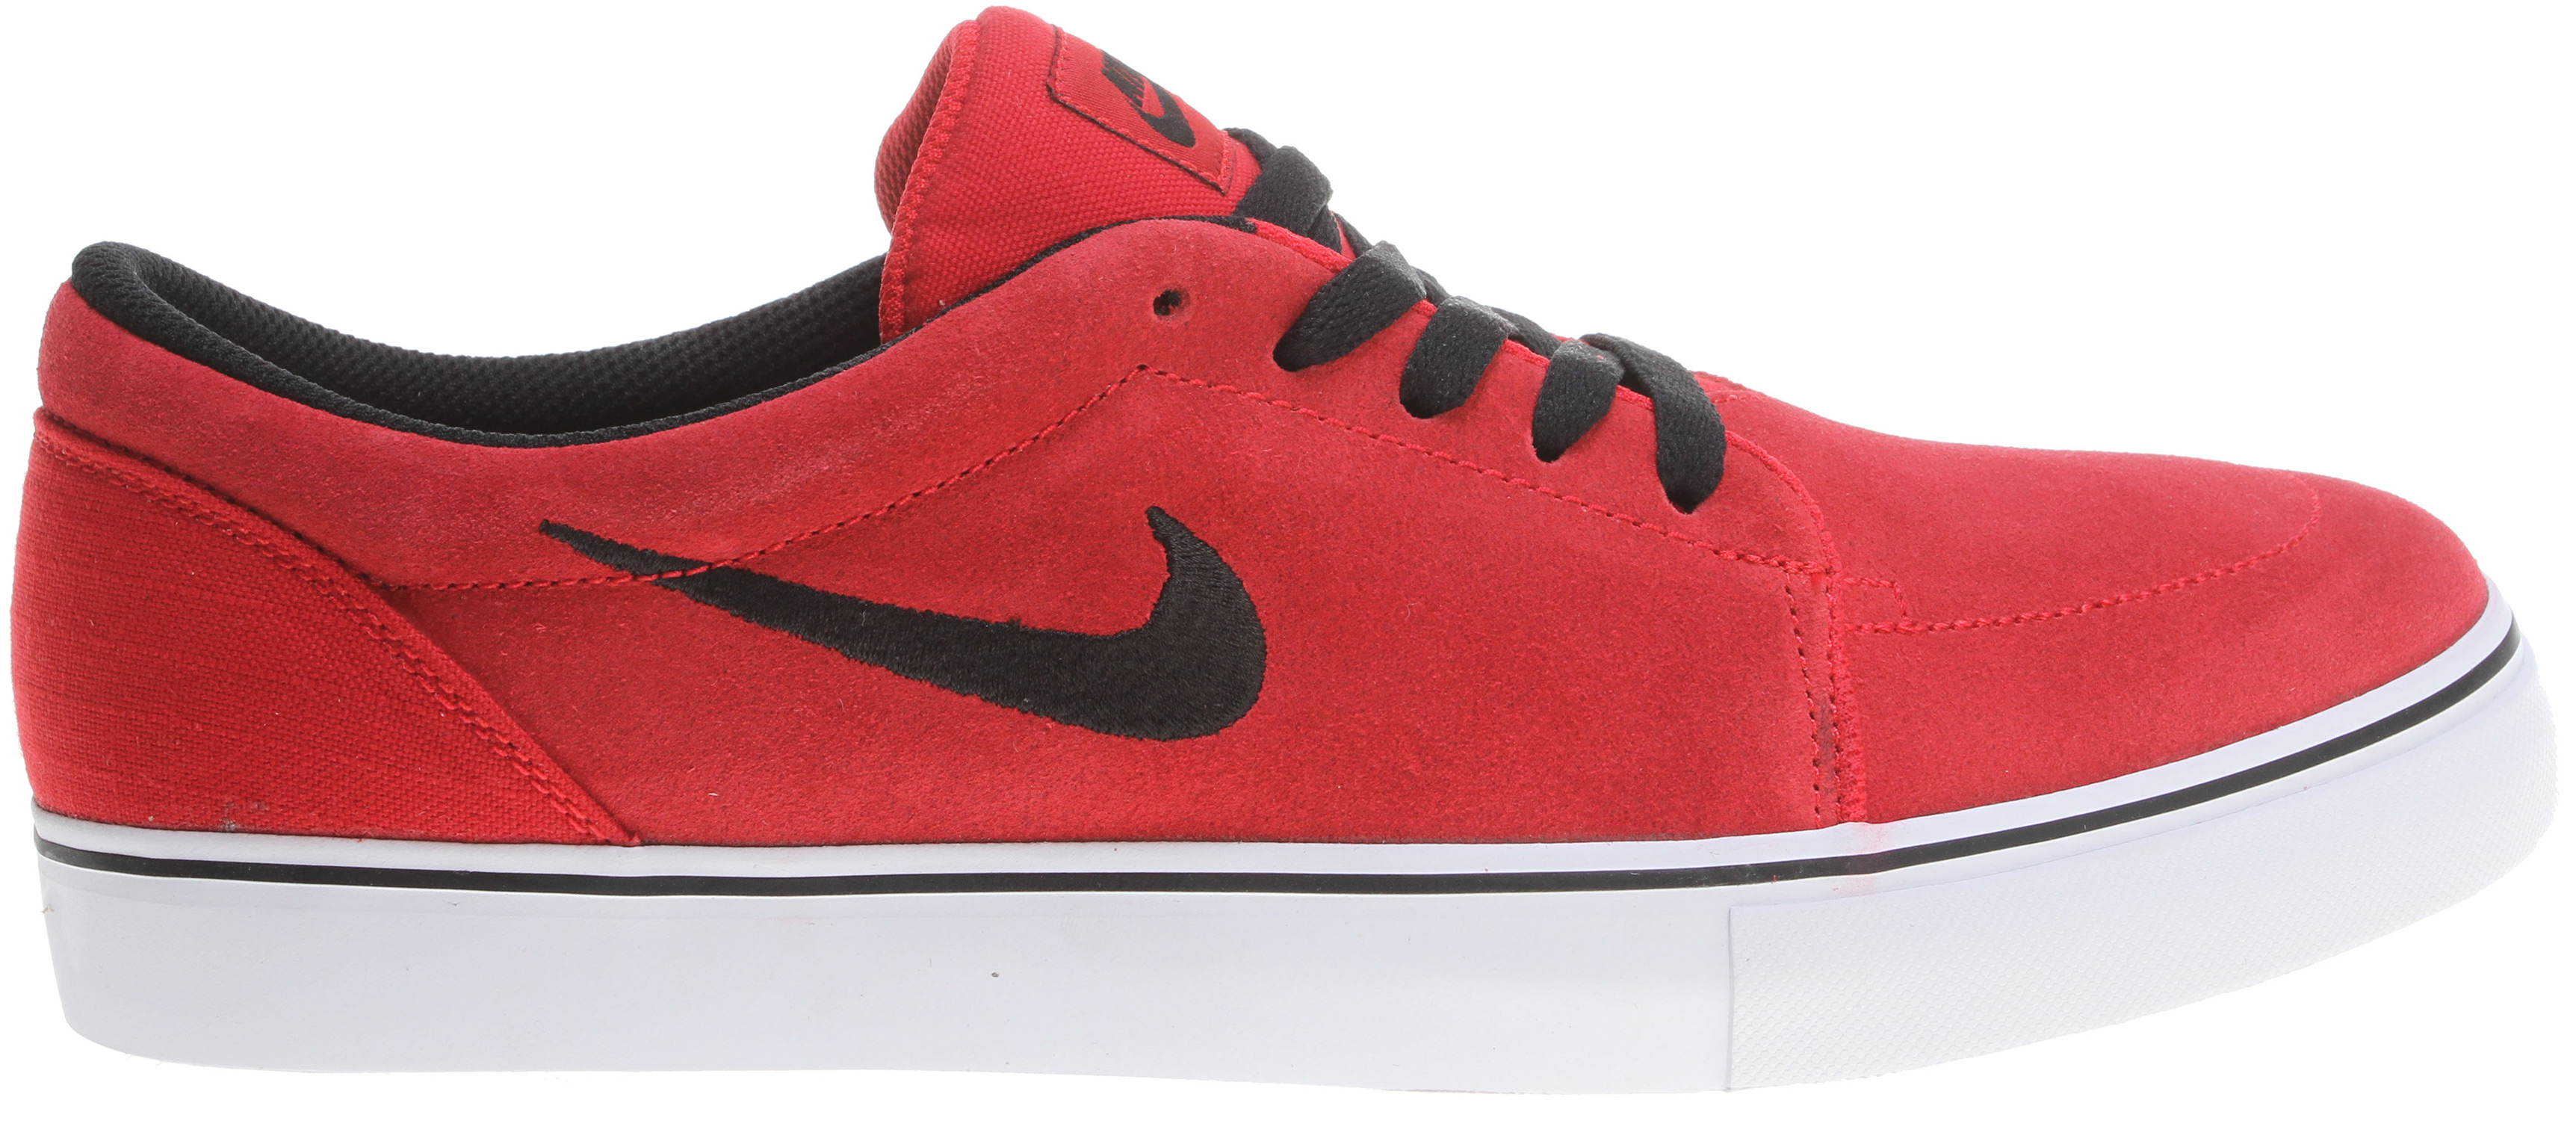 nike skate shoes nike satire canvas skate shoes. rollover to change   click to enlarge DYSGDEB